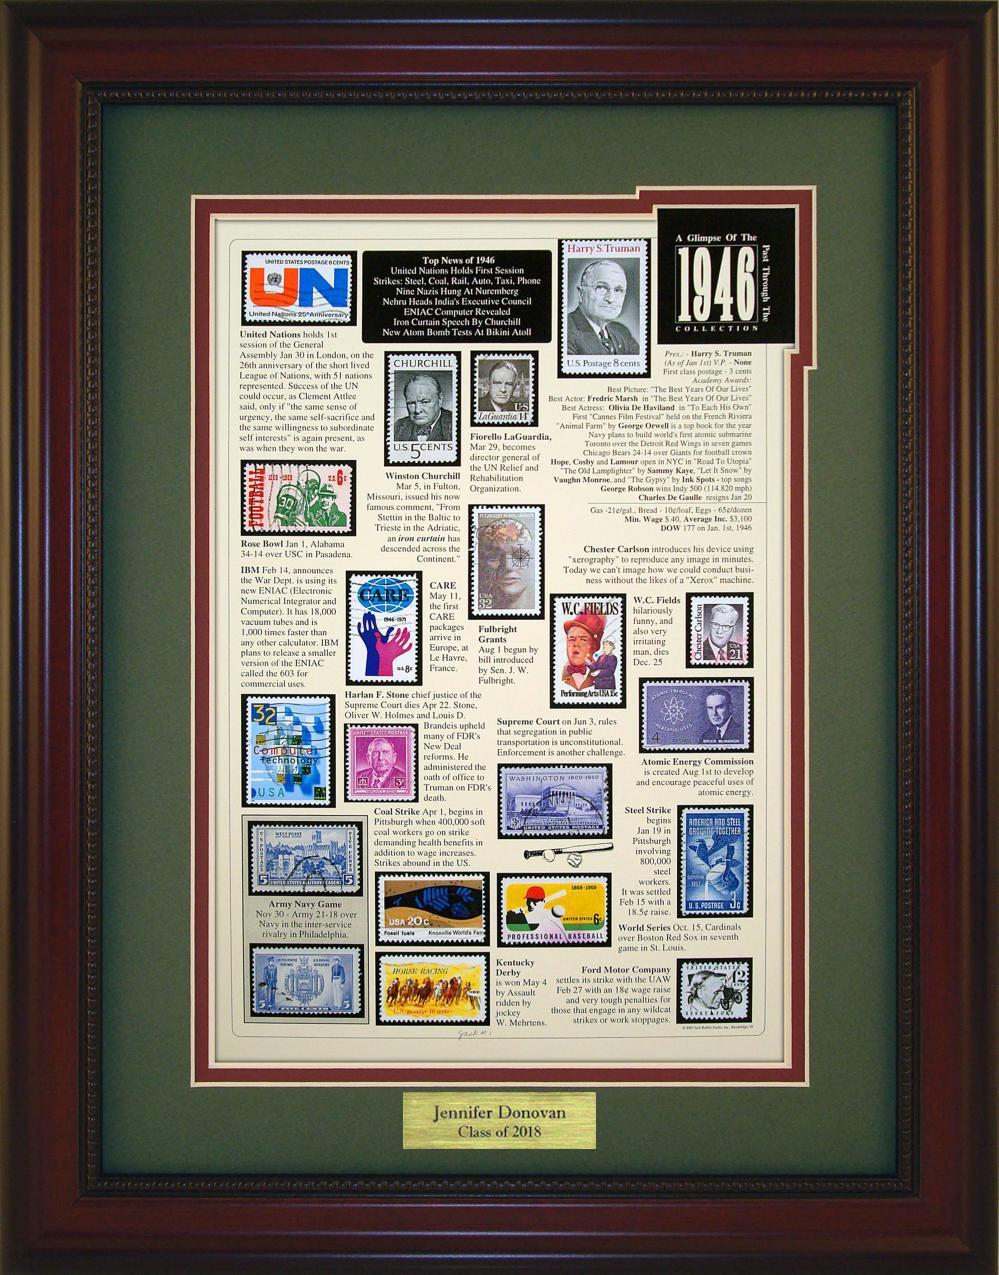 Year 1946 - Personalized Unique Framed Gift